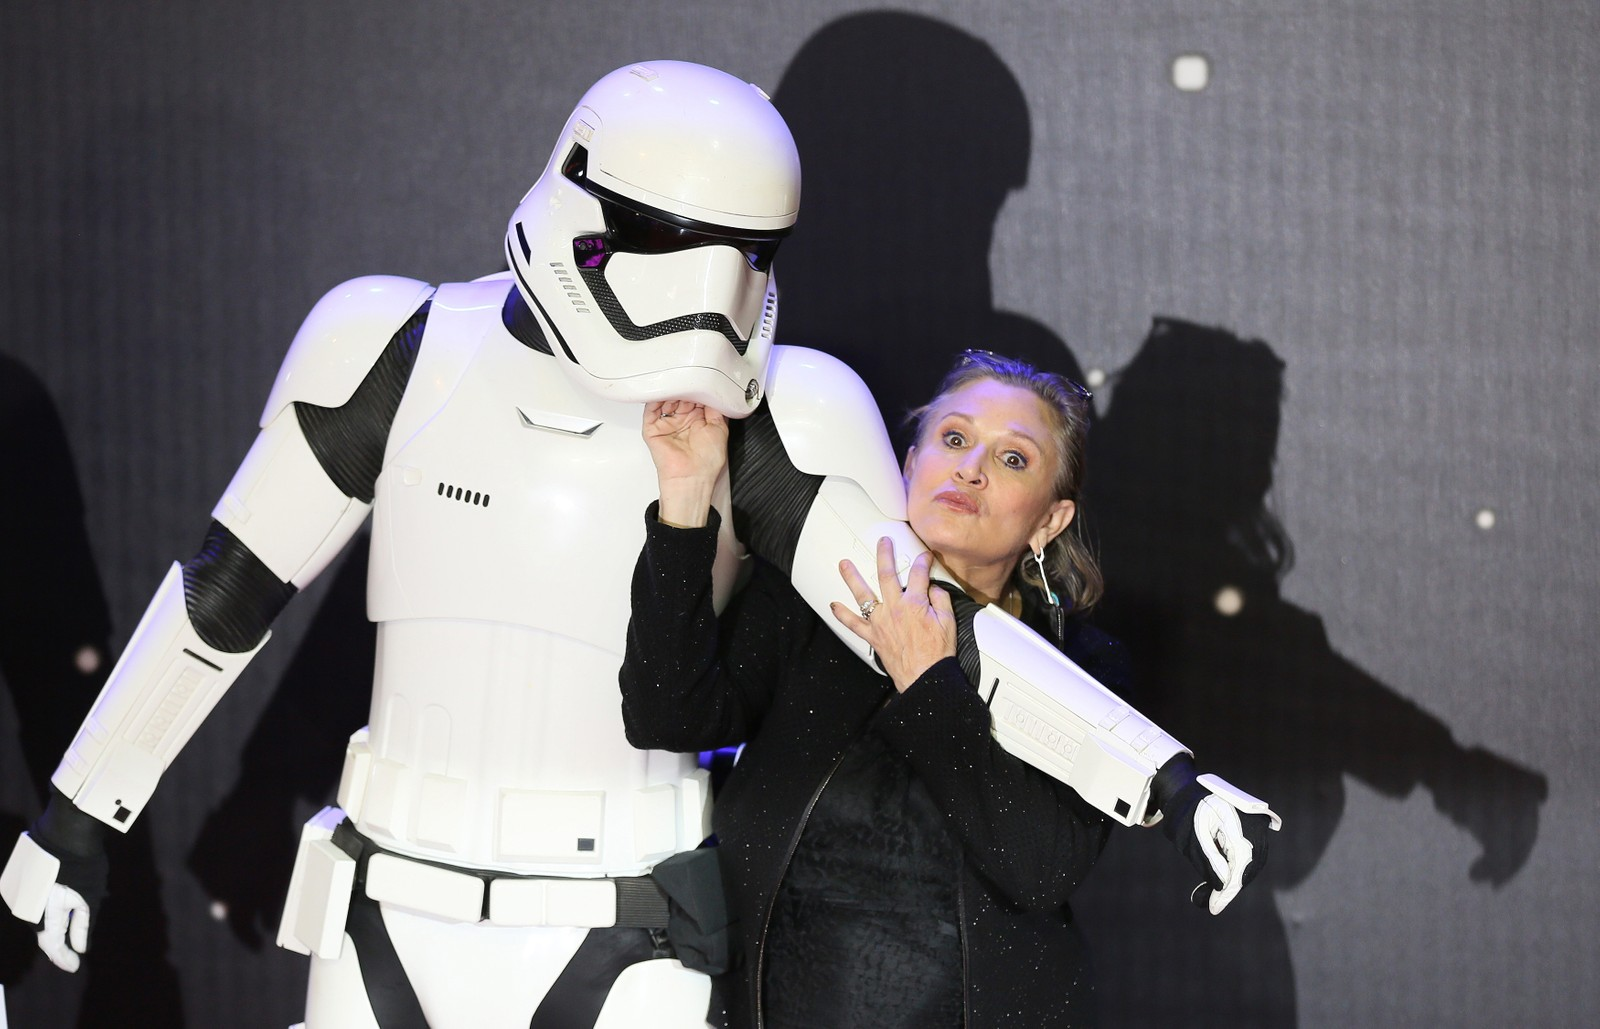 STAR WARS-STJERNE: Carrie Fisher tøyser med en «stormtrooper» på premieren av «Star Wars - The Force Awakens» i London. Fisher returnerte til Star Wars-universet i filmen.